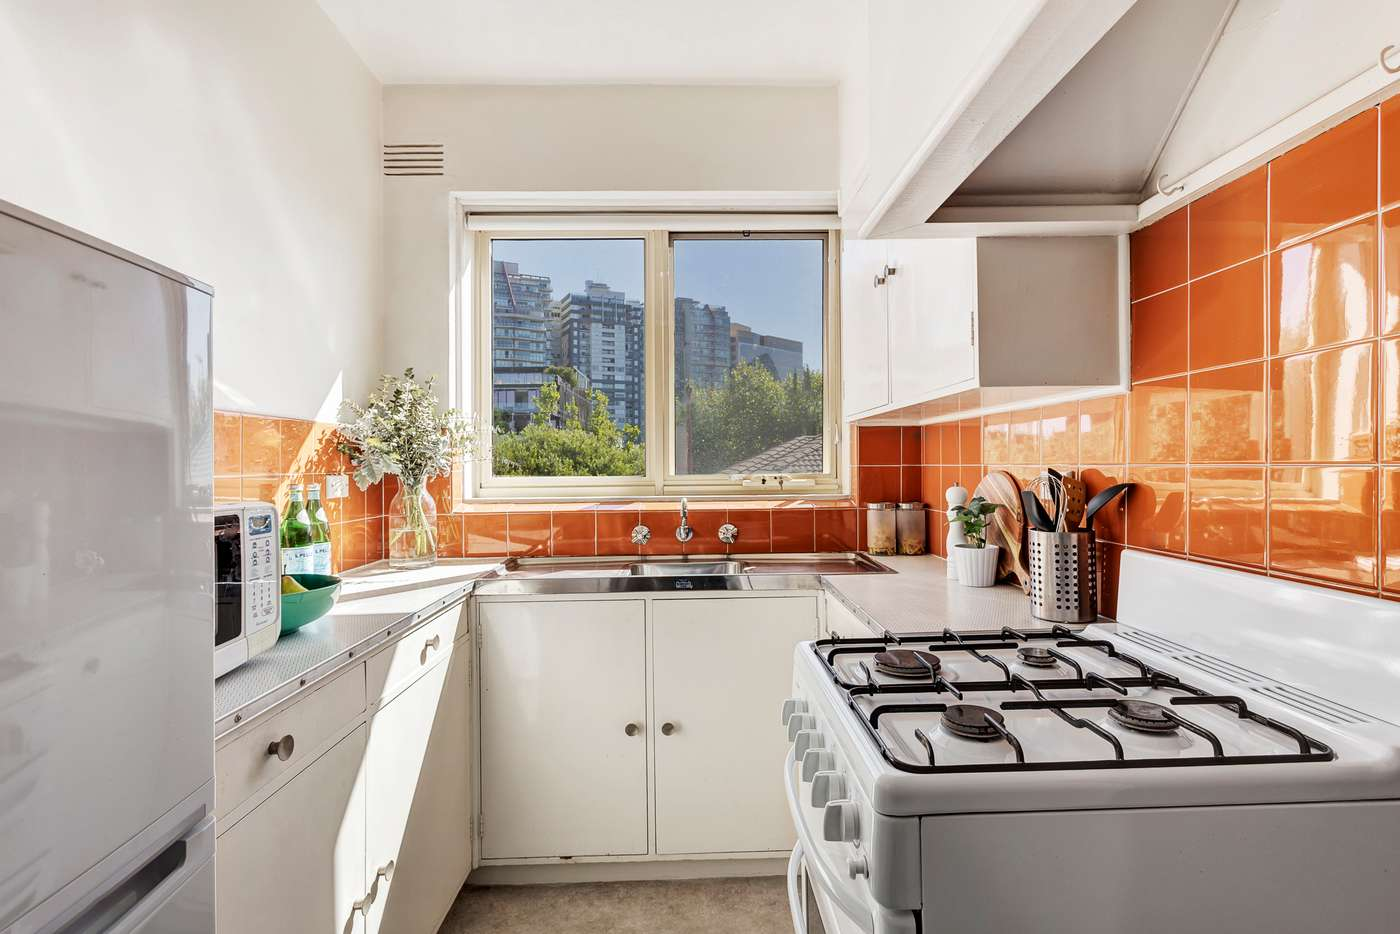 Fifth view of Homely apartment listing, 12/57 Adams Street, South Yarra VIC 3141